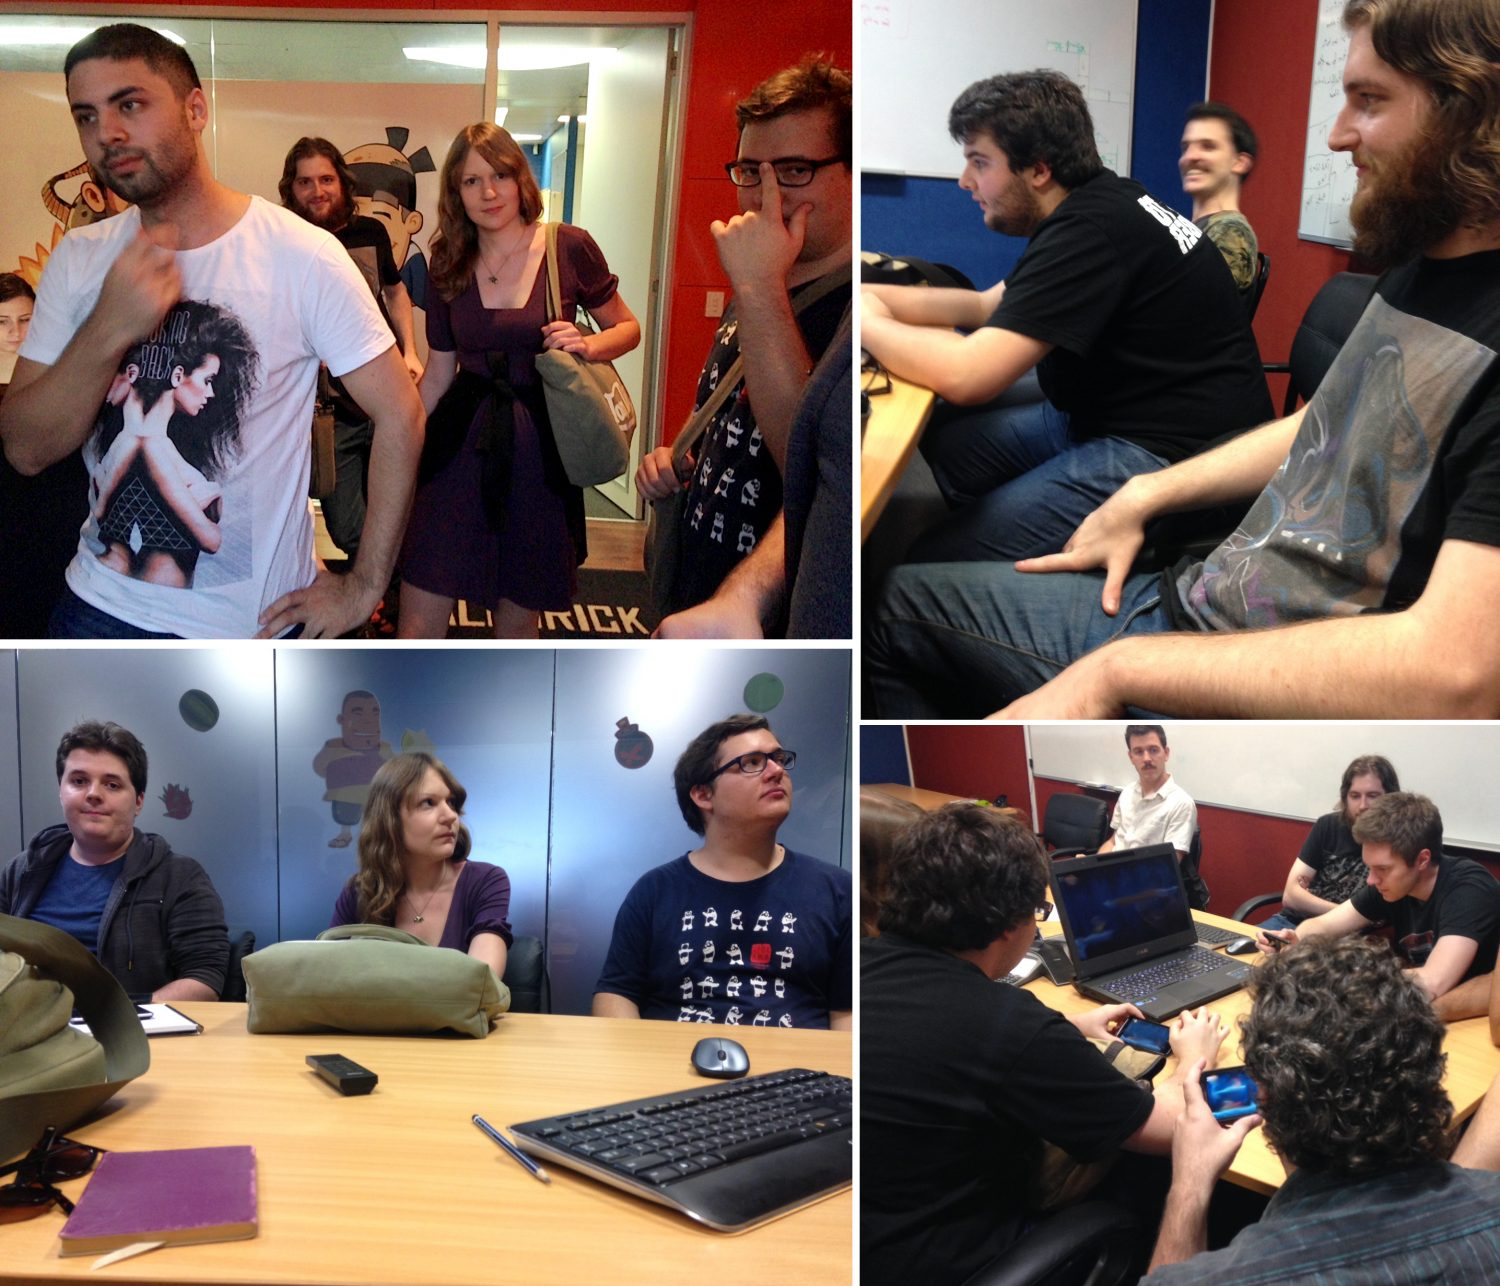 Collage of the team creating the game Oblivious Adventurer at Halfbrick studios in Brisbane